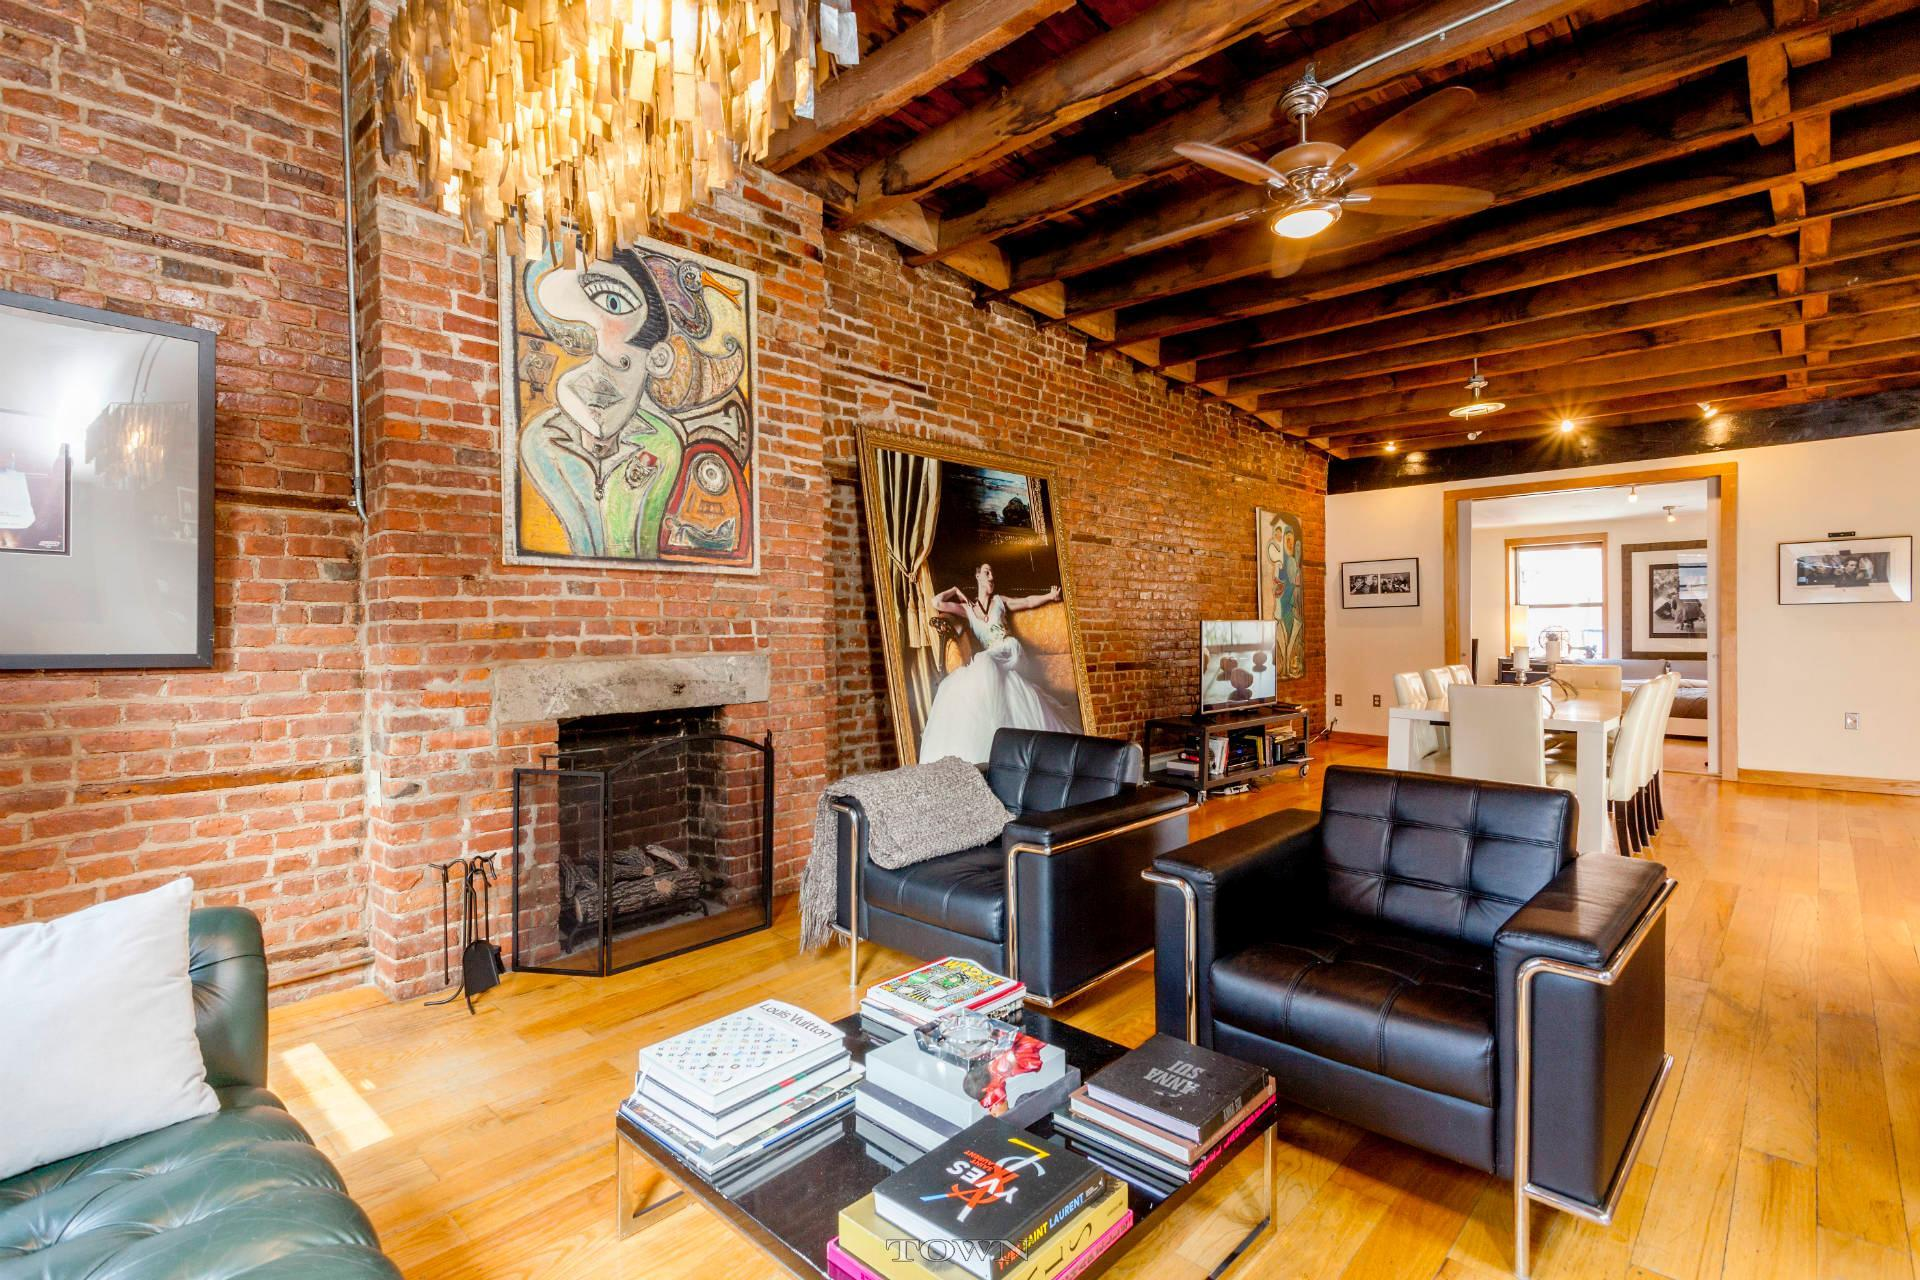 A 32 foot long living room with exposed brick dominates for 6 in the living room